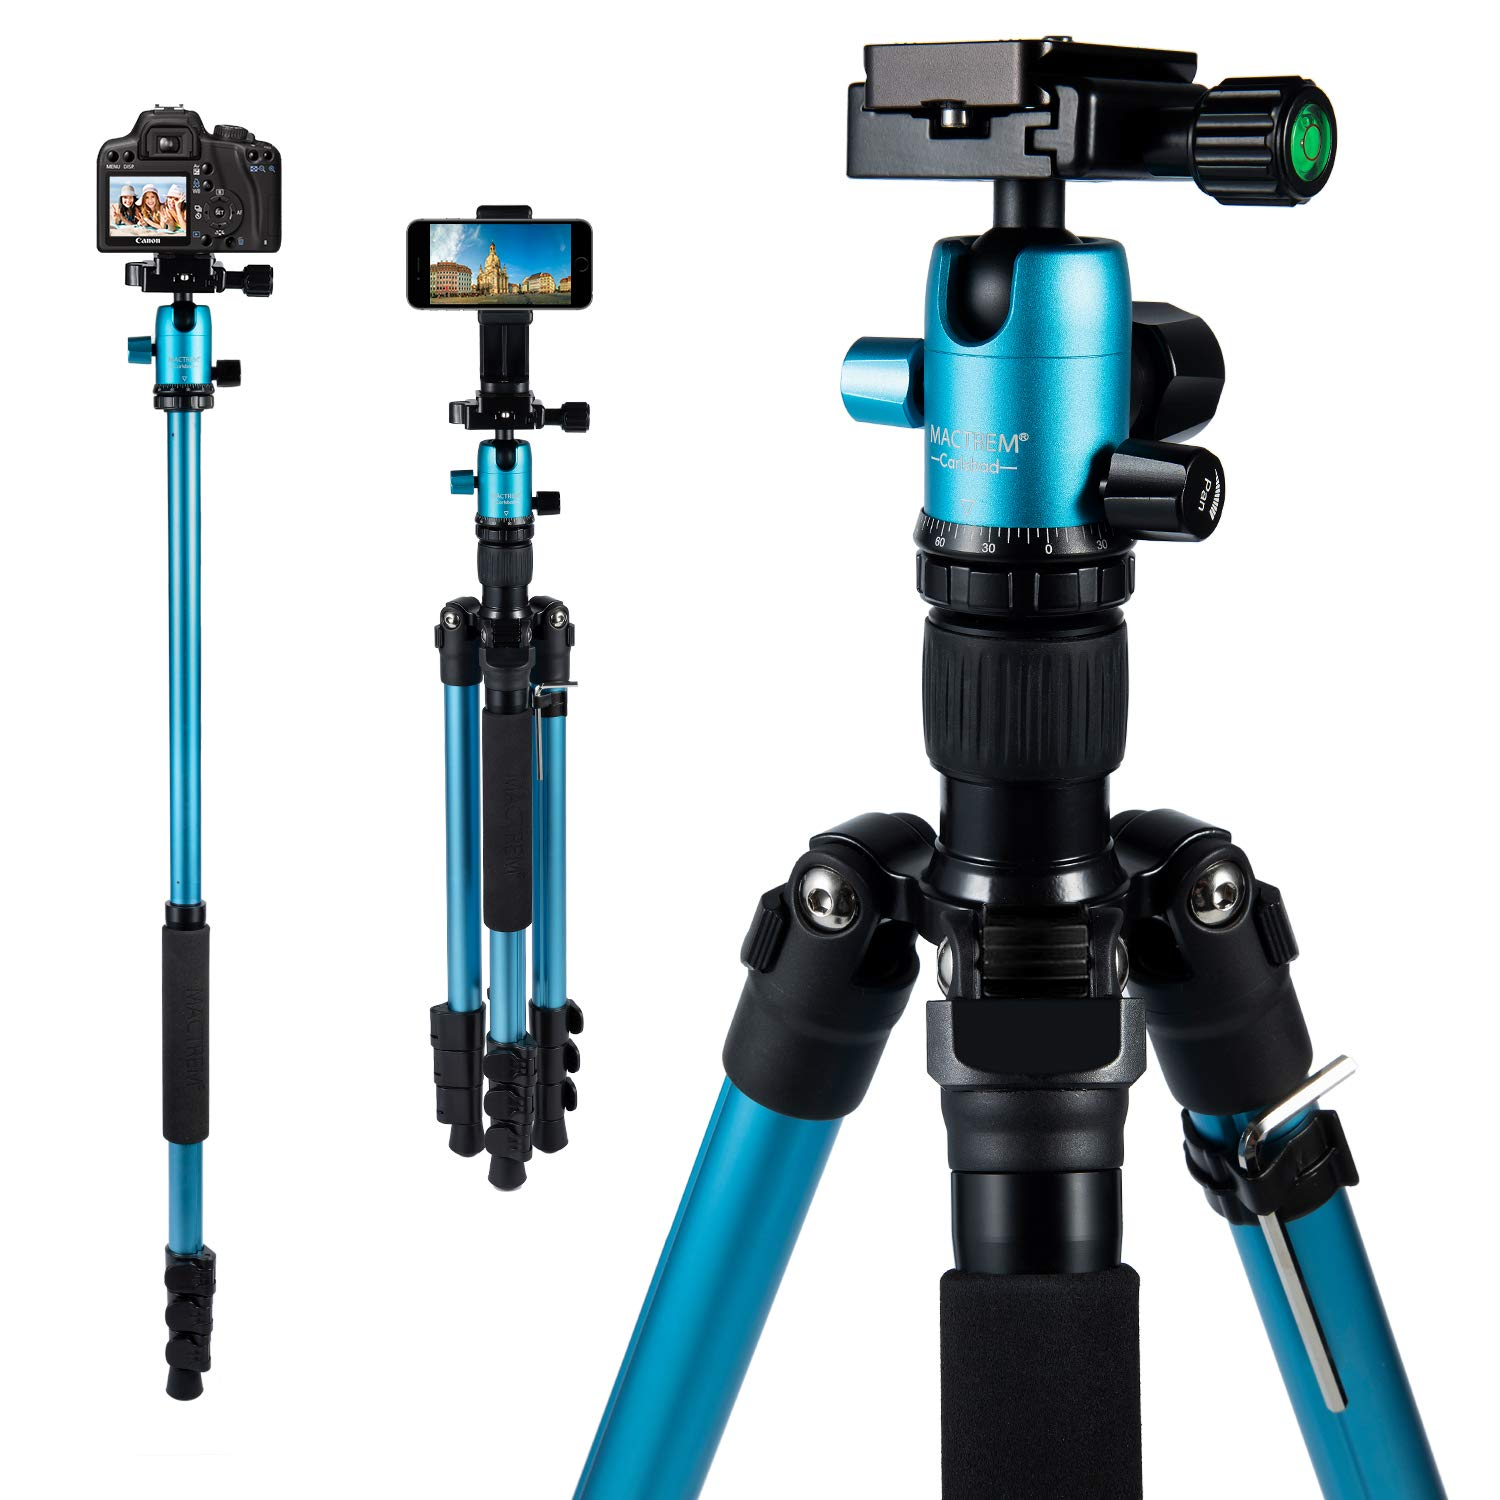 MACTREM Tripod DSLR SLR Tripod, 62.5'' Light-Weight Aluminum Alloy Camera Tripod Phone Tripod with Phone Holder, 360 Degree Ball Head, Detachable Monopod, 33Lbs Load with Carry Bag by MACTREM